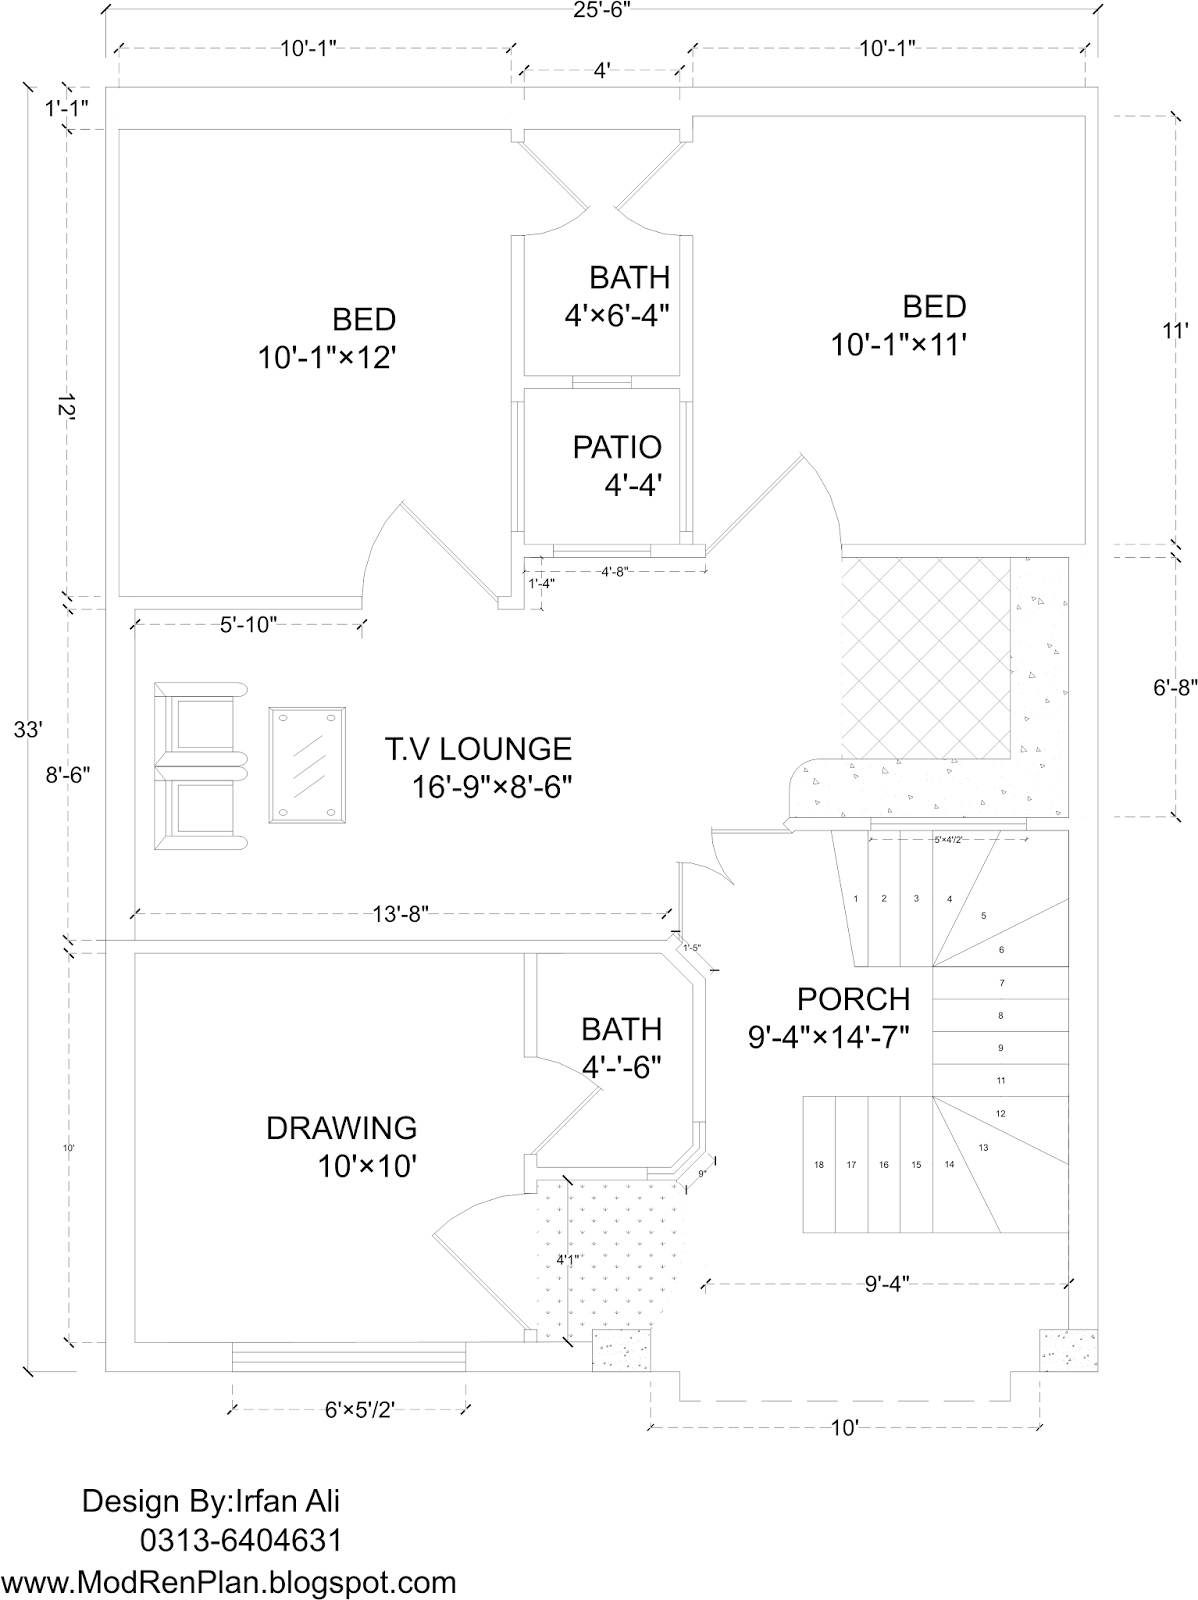 5 marla house plan and map with detail 25x33 house plan House map design online free